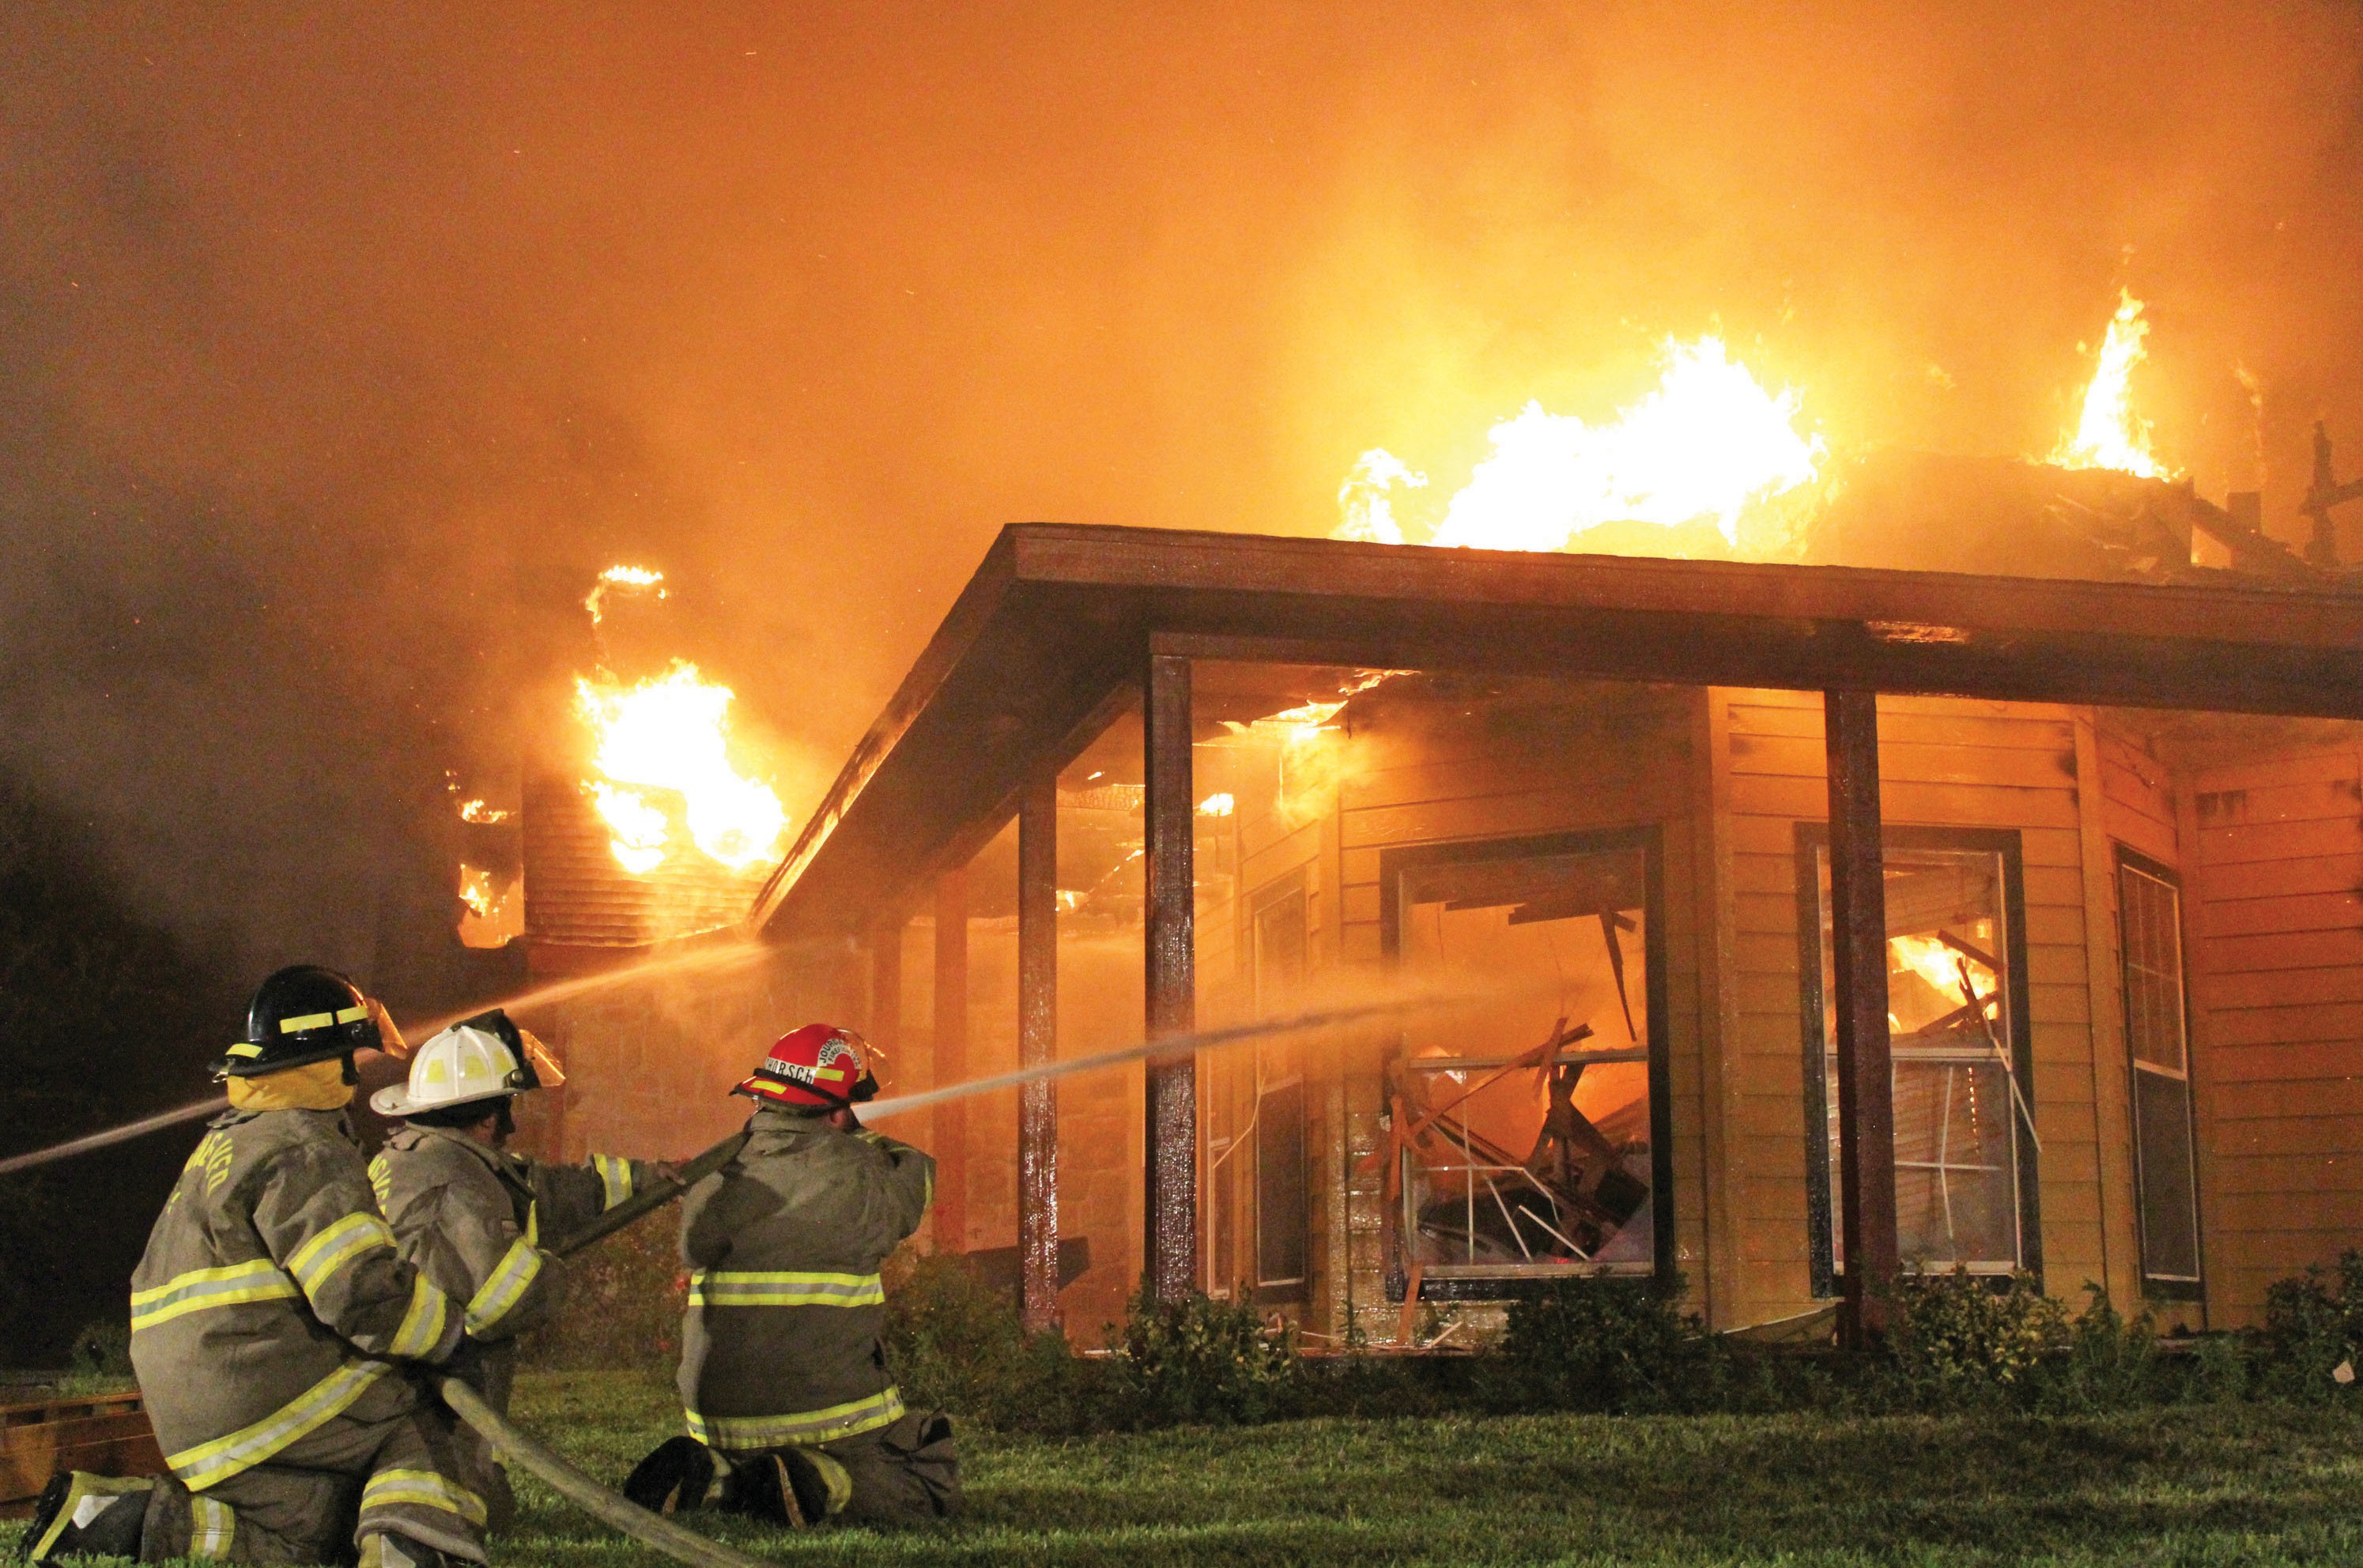 A home on 4775 State Highway 97 was destroyed by fire on Tuesday. The fire started around 7:00pm. Leming VFD, Pleasanton VFD, and Jourdanton VFD responded to the call. No one was hurt.